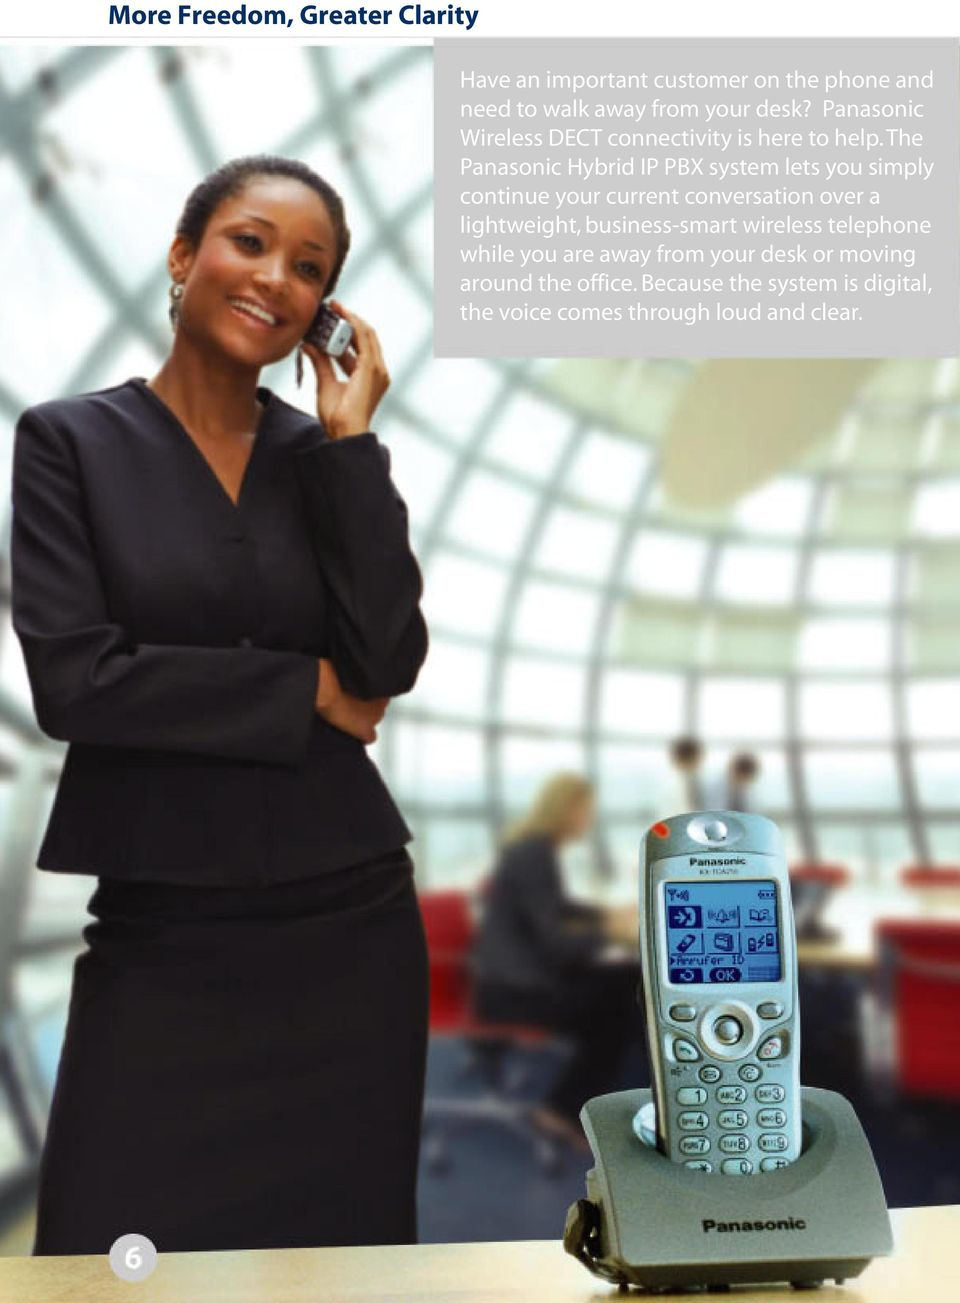 The Panasonic Hybrid IP PBX system lets you simply continue your current conversation over a lightweight,